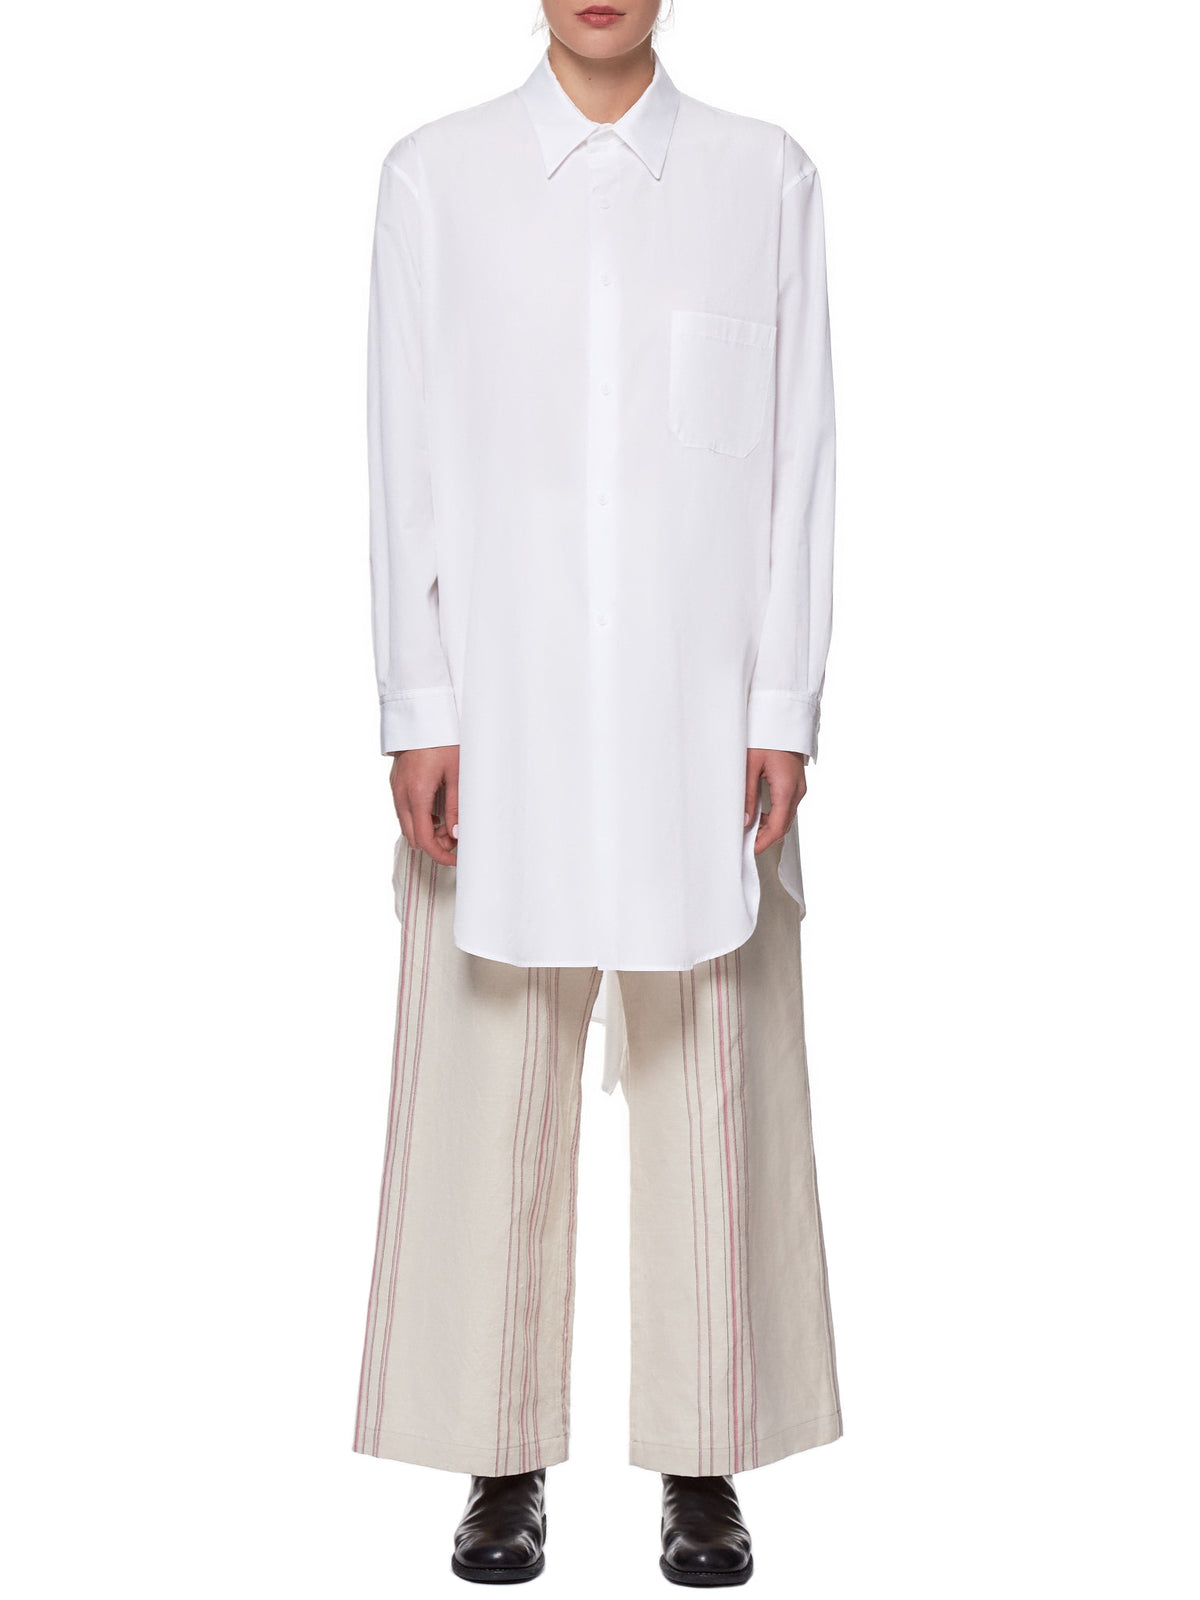 Oversized Formal Shirt (YH-B01-001-WHITE)